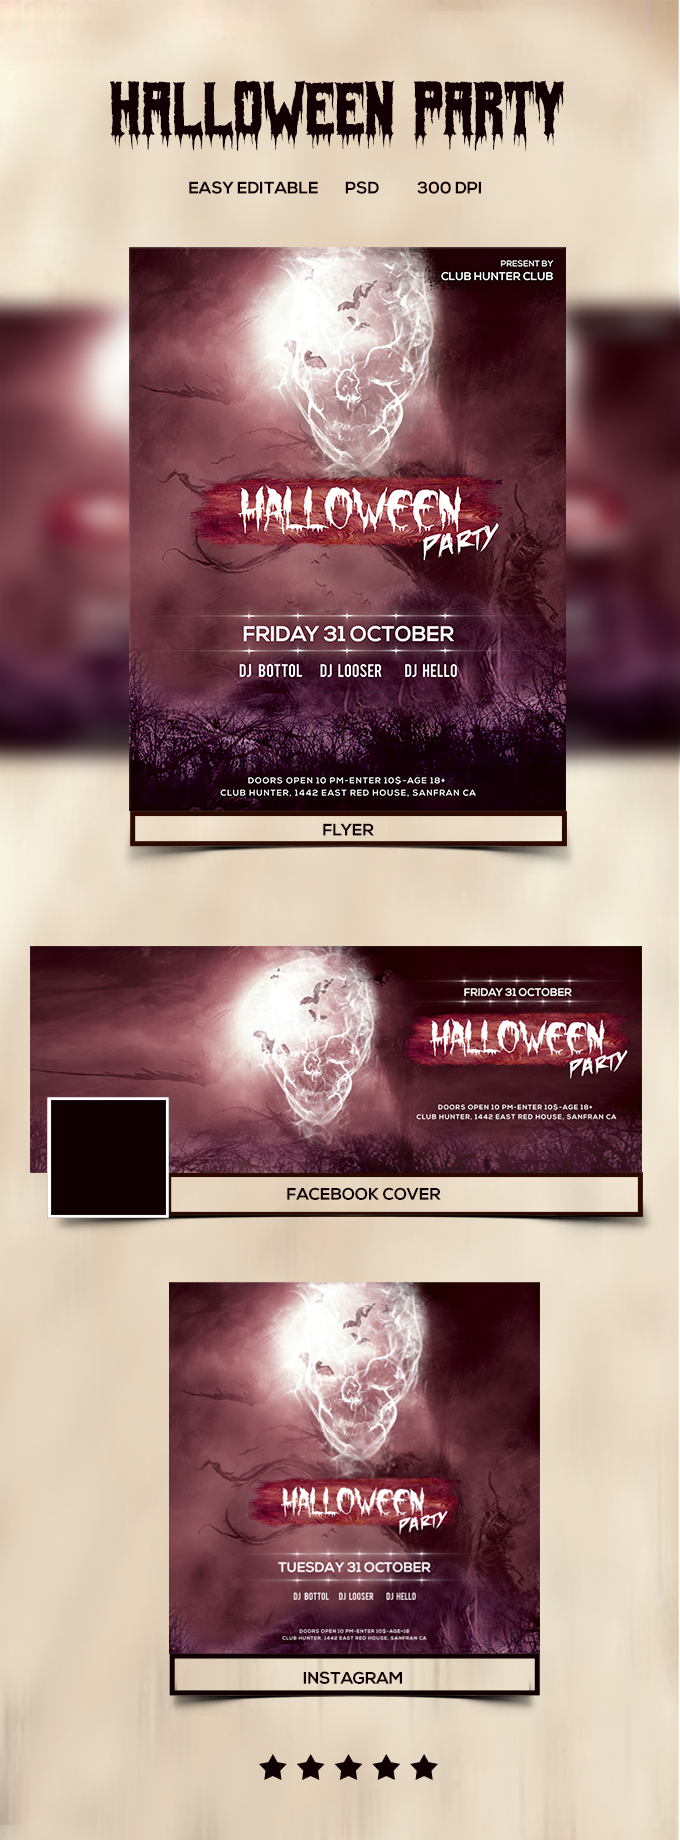 Halloween Party Flyer with Free Social Media Banner